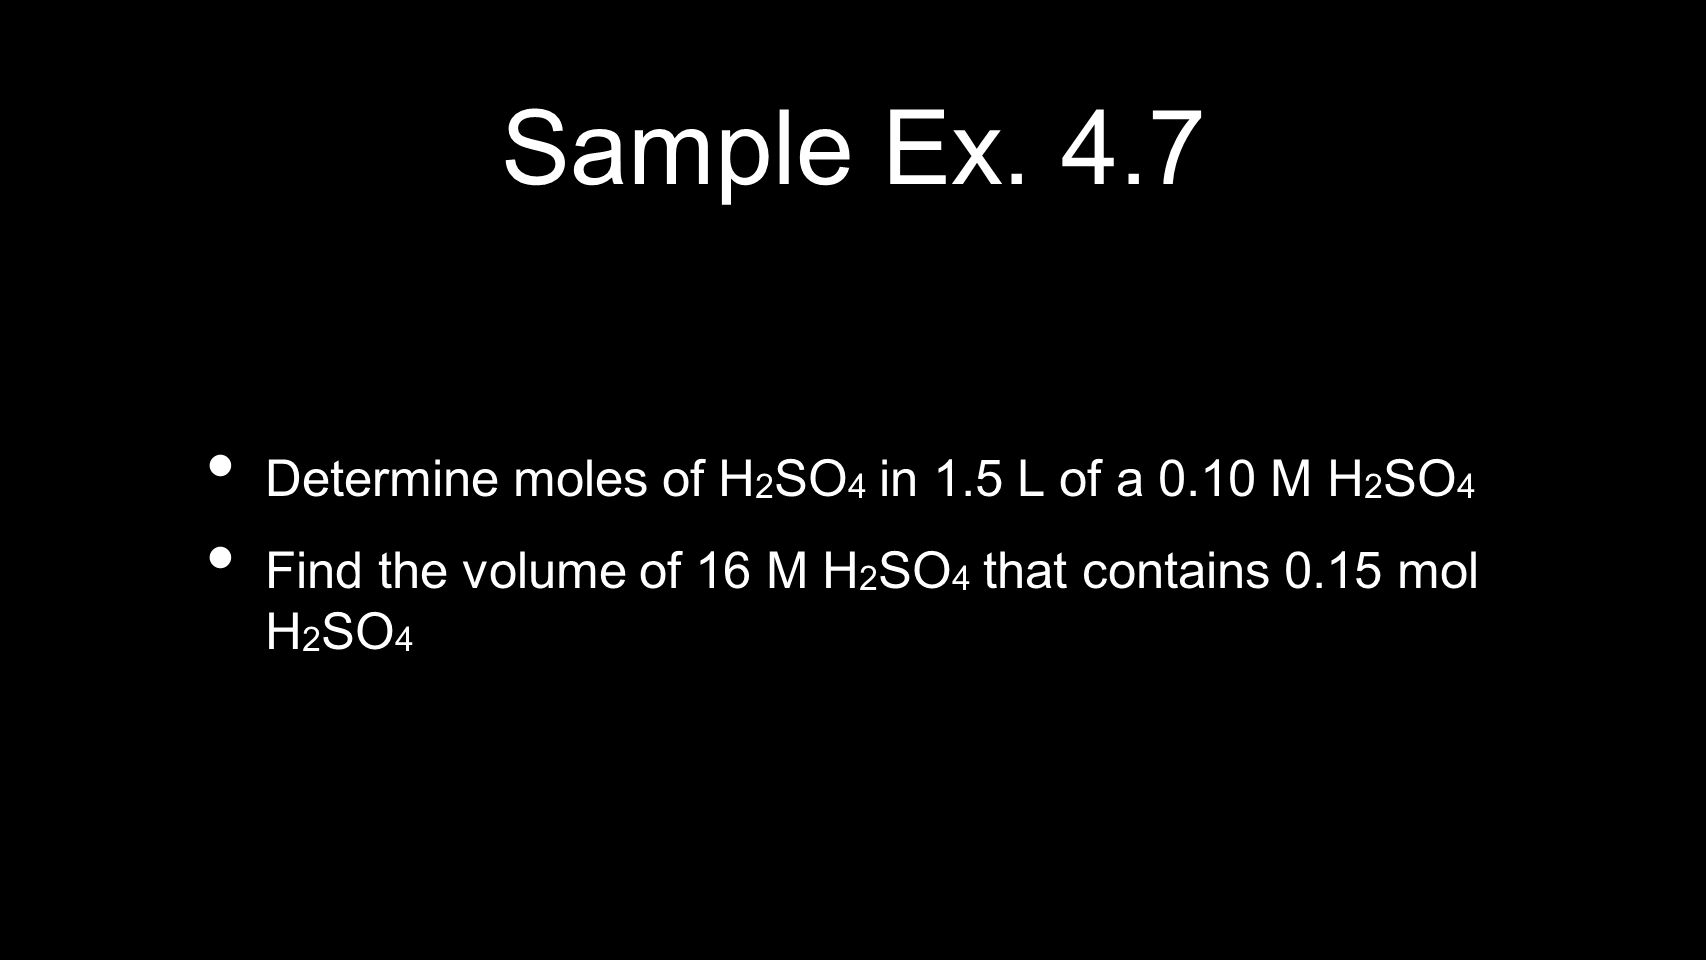 Sample Ex. 4.7 Determine moles of H2SO4 in 1.5 L of a 0.10 M H2SO4